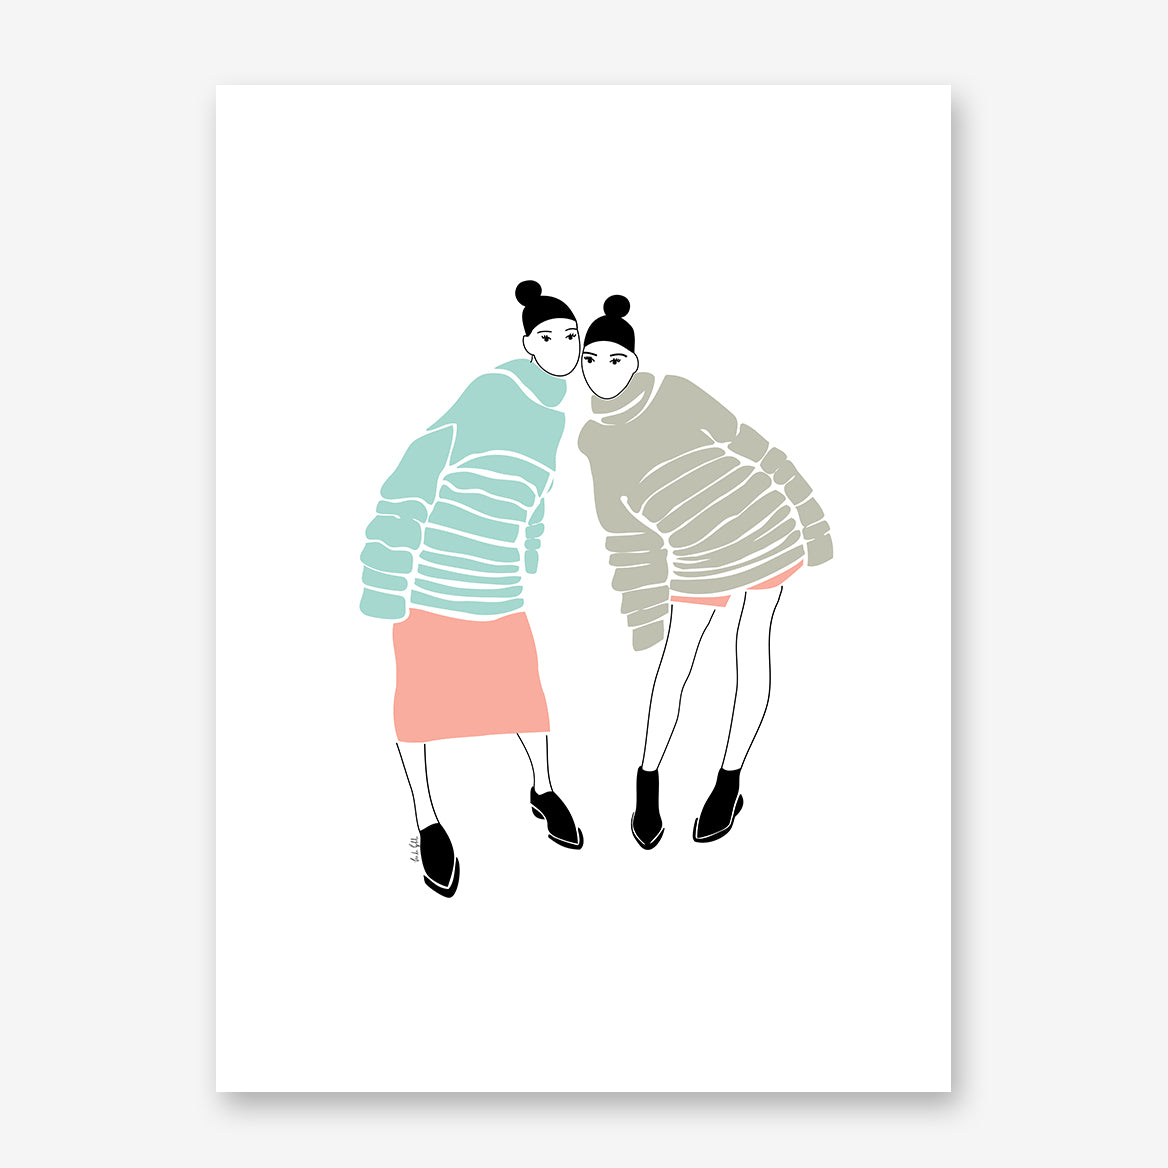 Fashion illustration print by Linda Gobeta, with 2 best friends, on white background